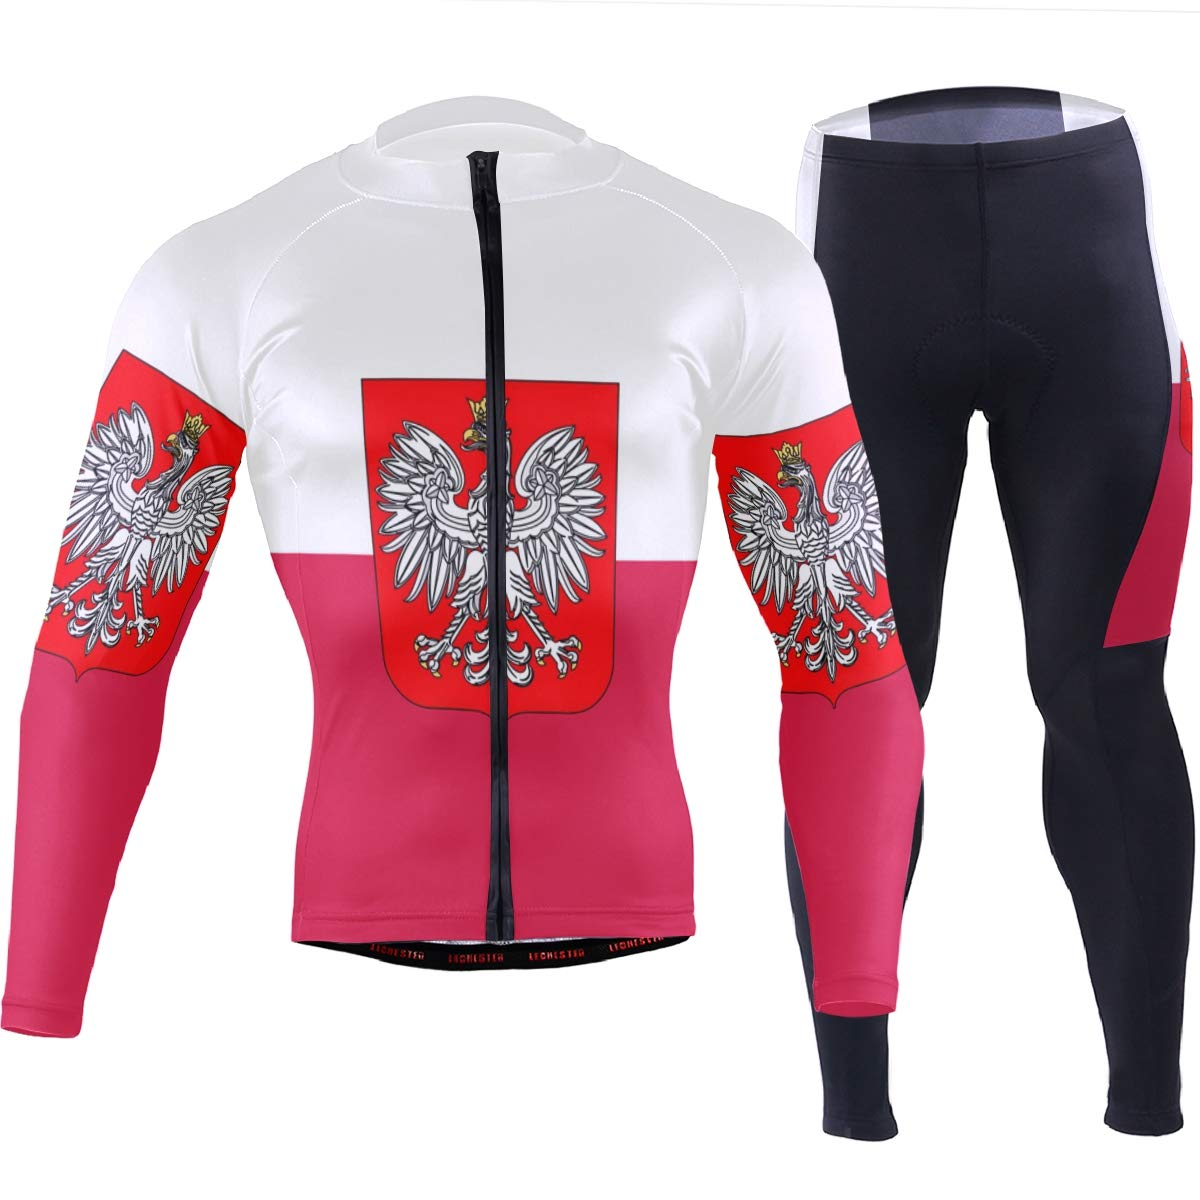 Men's Cycling Jersey Long Sleeve with 3 Rear Pockets Suit Poland Flag National Emblem by CHINEIN